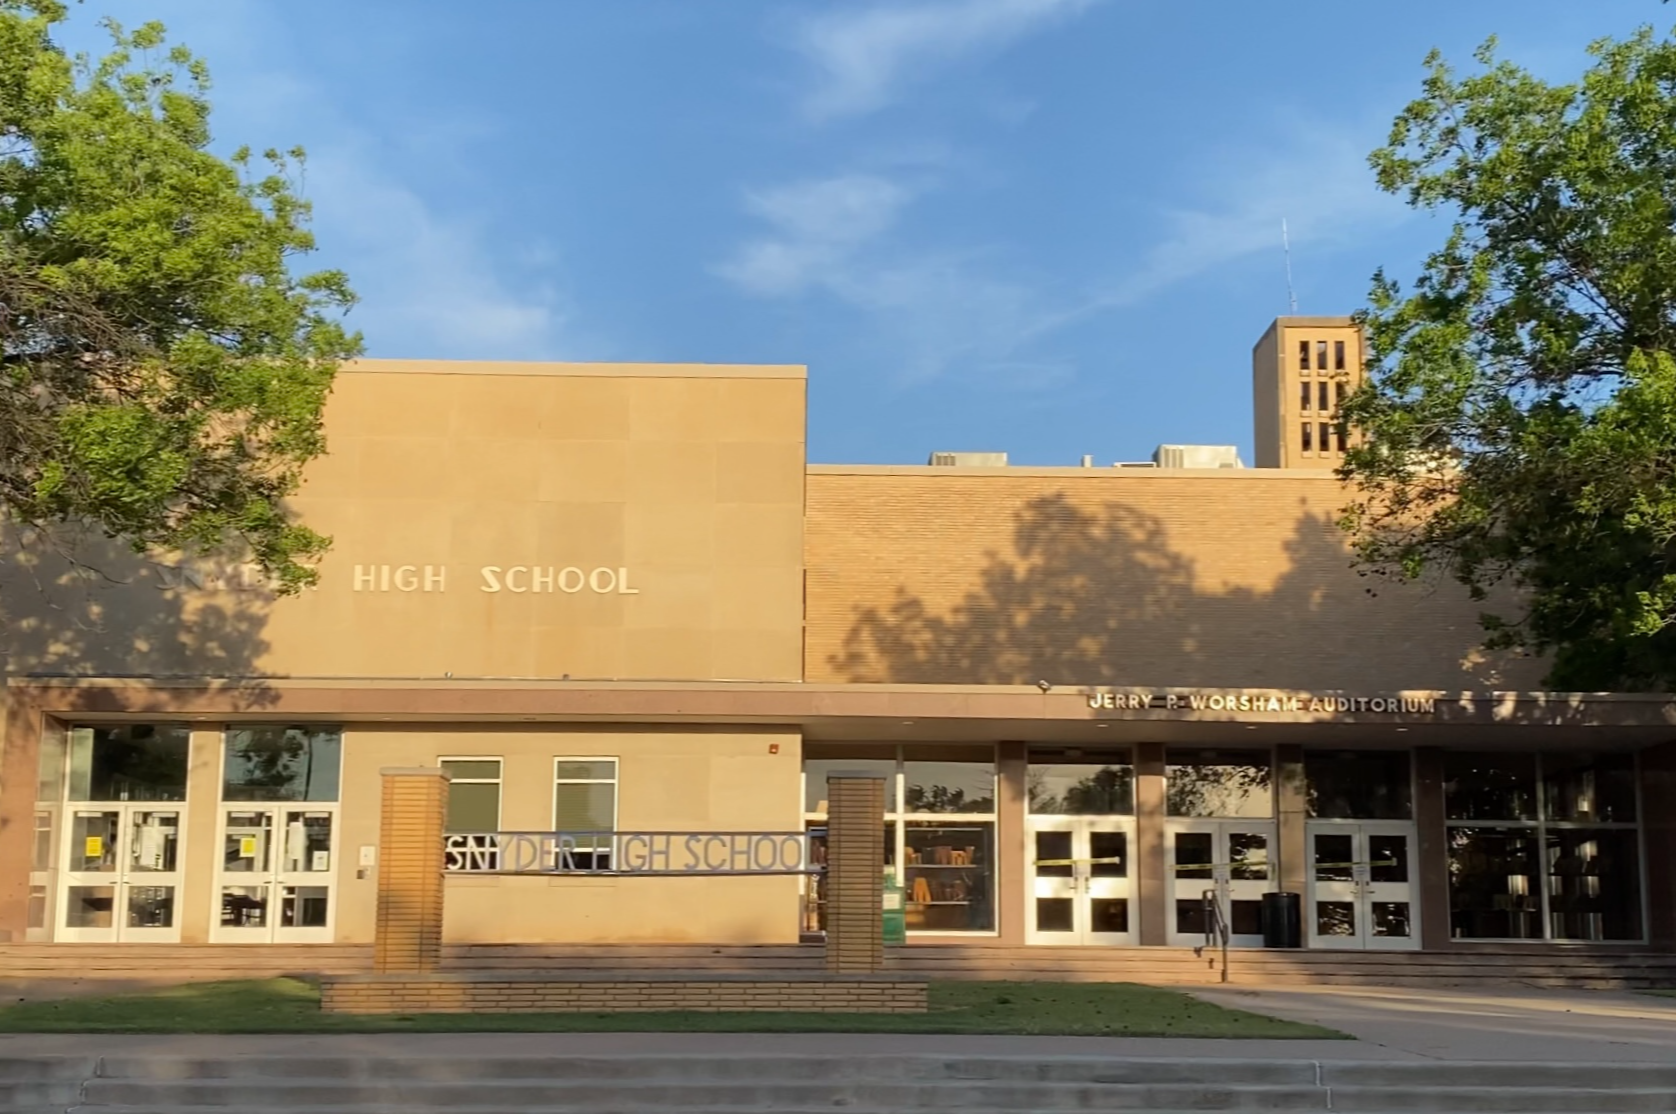 Snyder High School